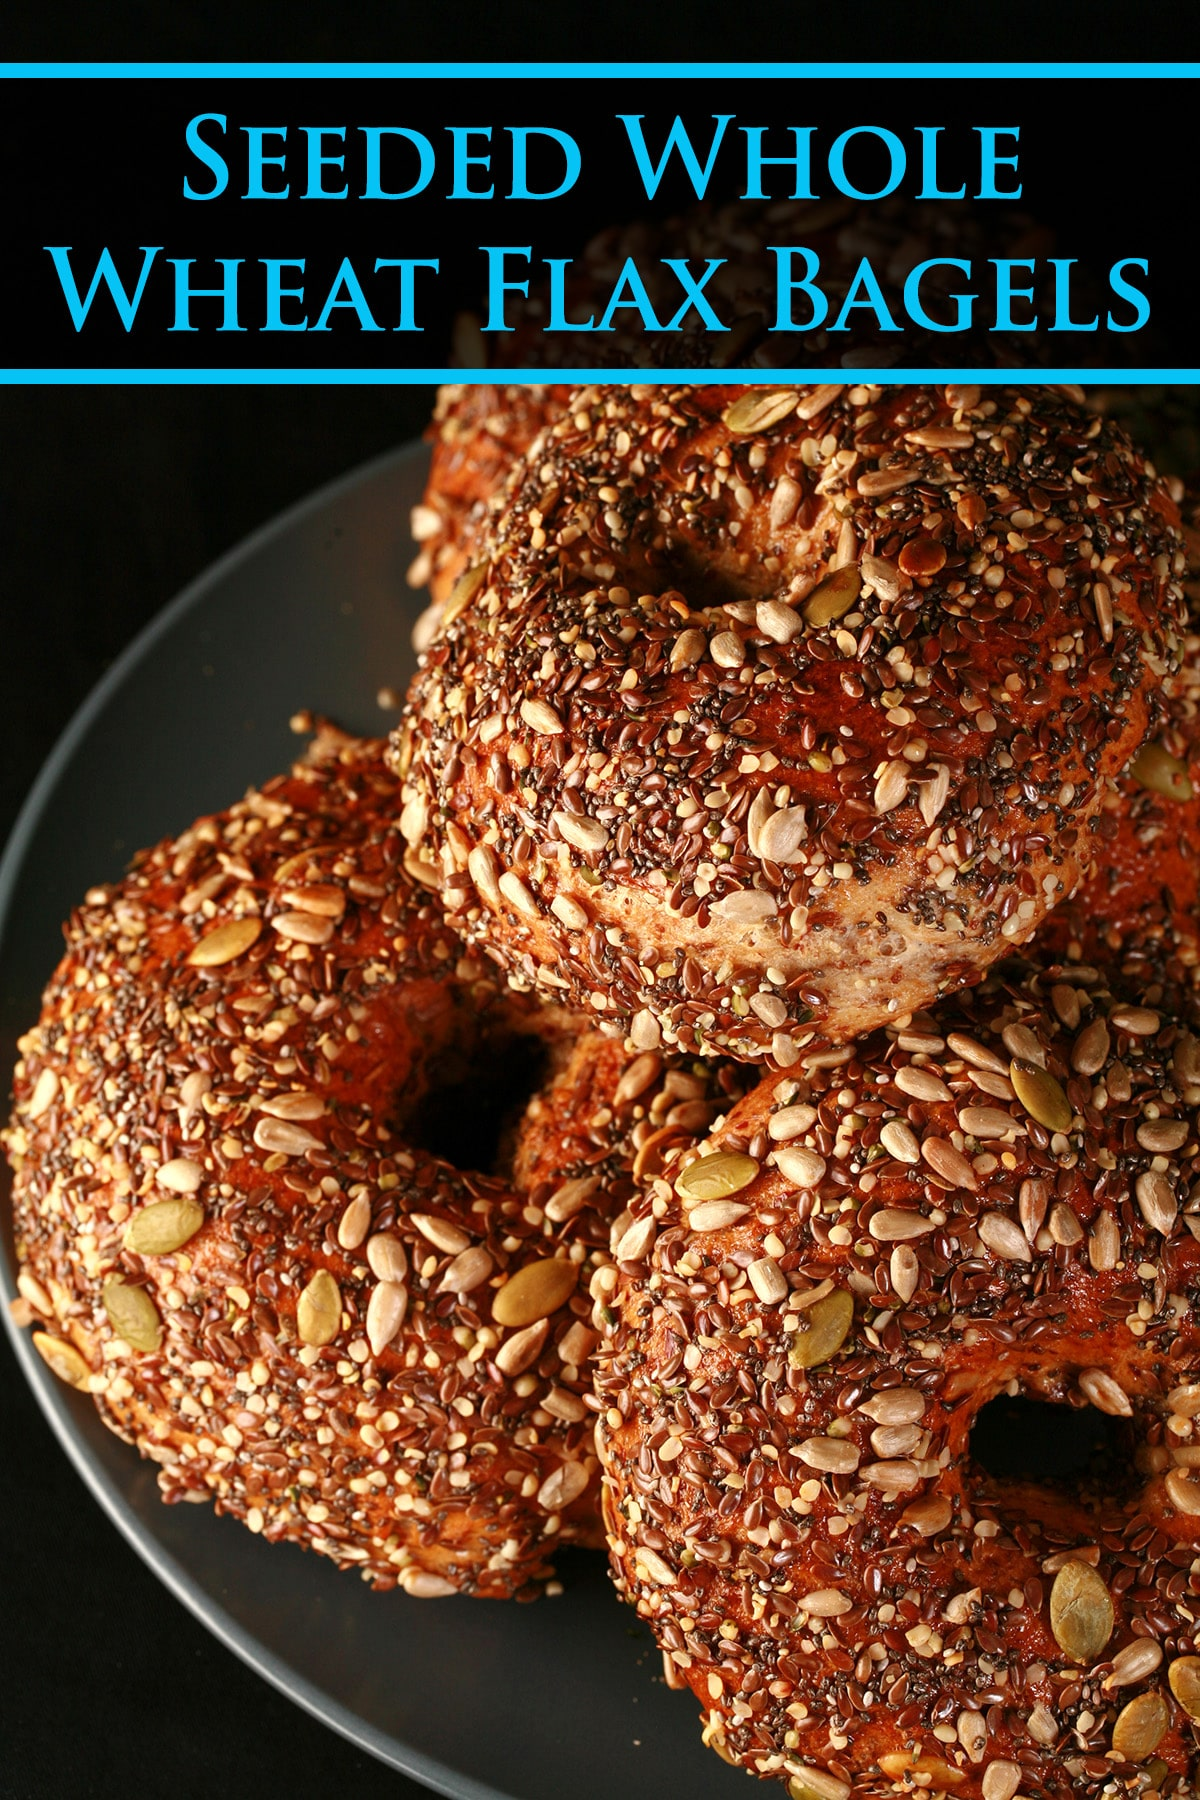 A plate stacked with a pile of whole wheat and flax bagels. The top side of each bagel is covered in a mix of seeds - pumpkin, sunflower, flax, sesame, chia, and poppy.